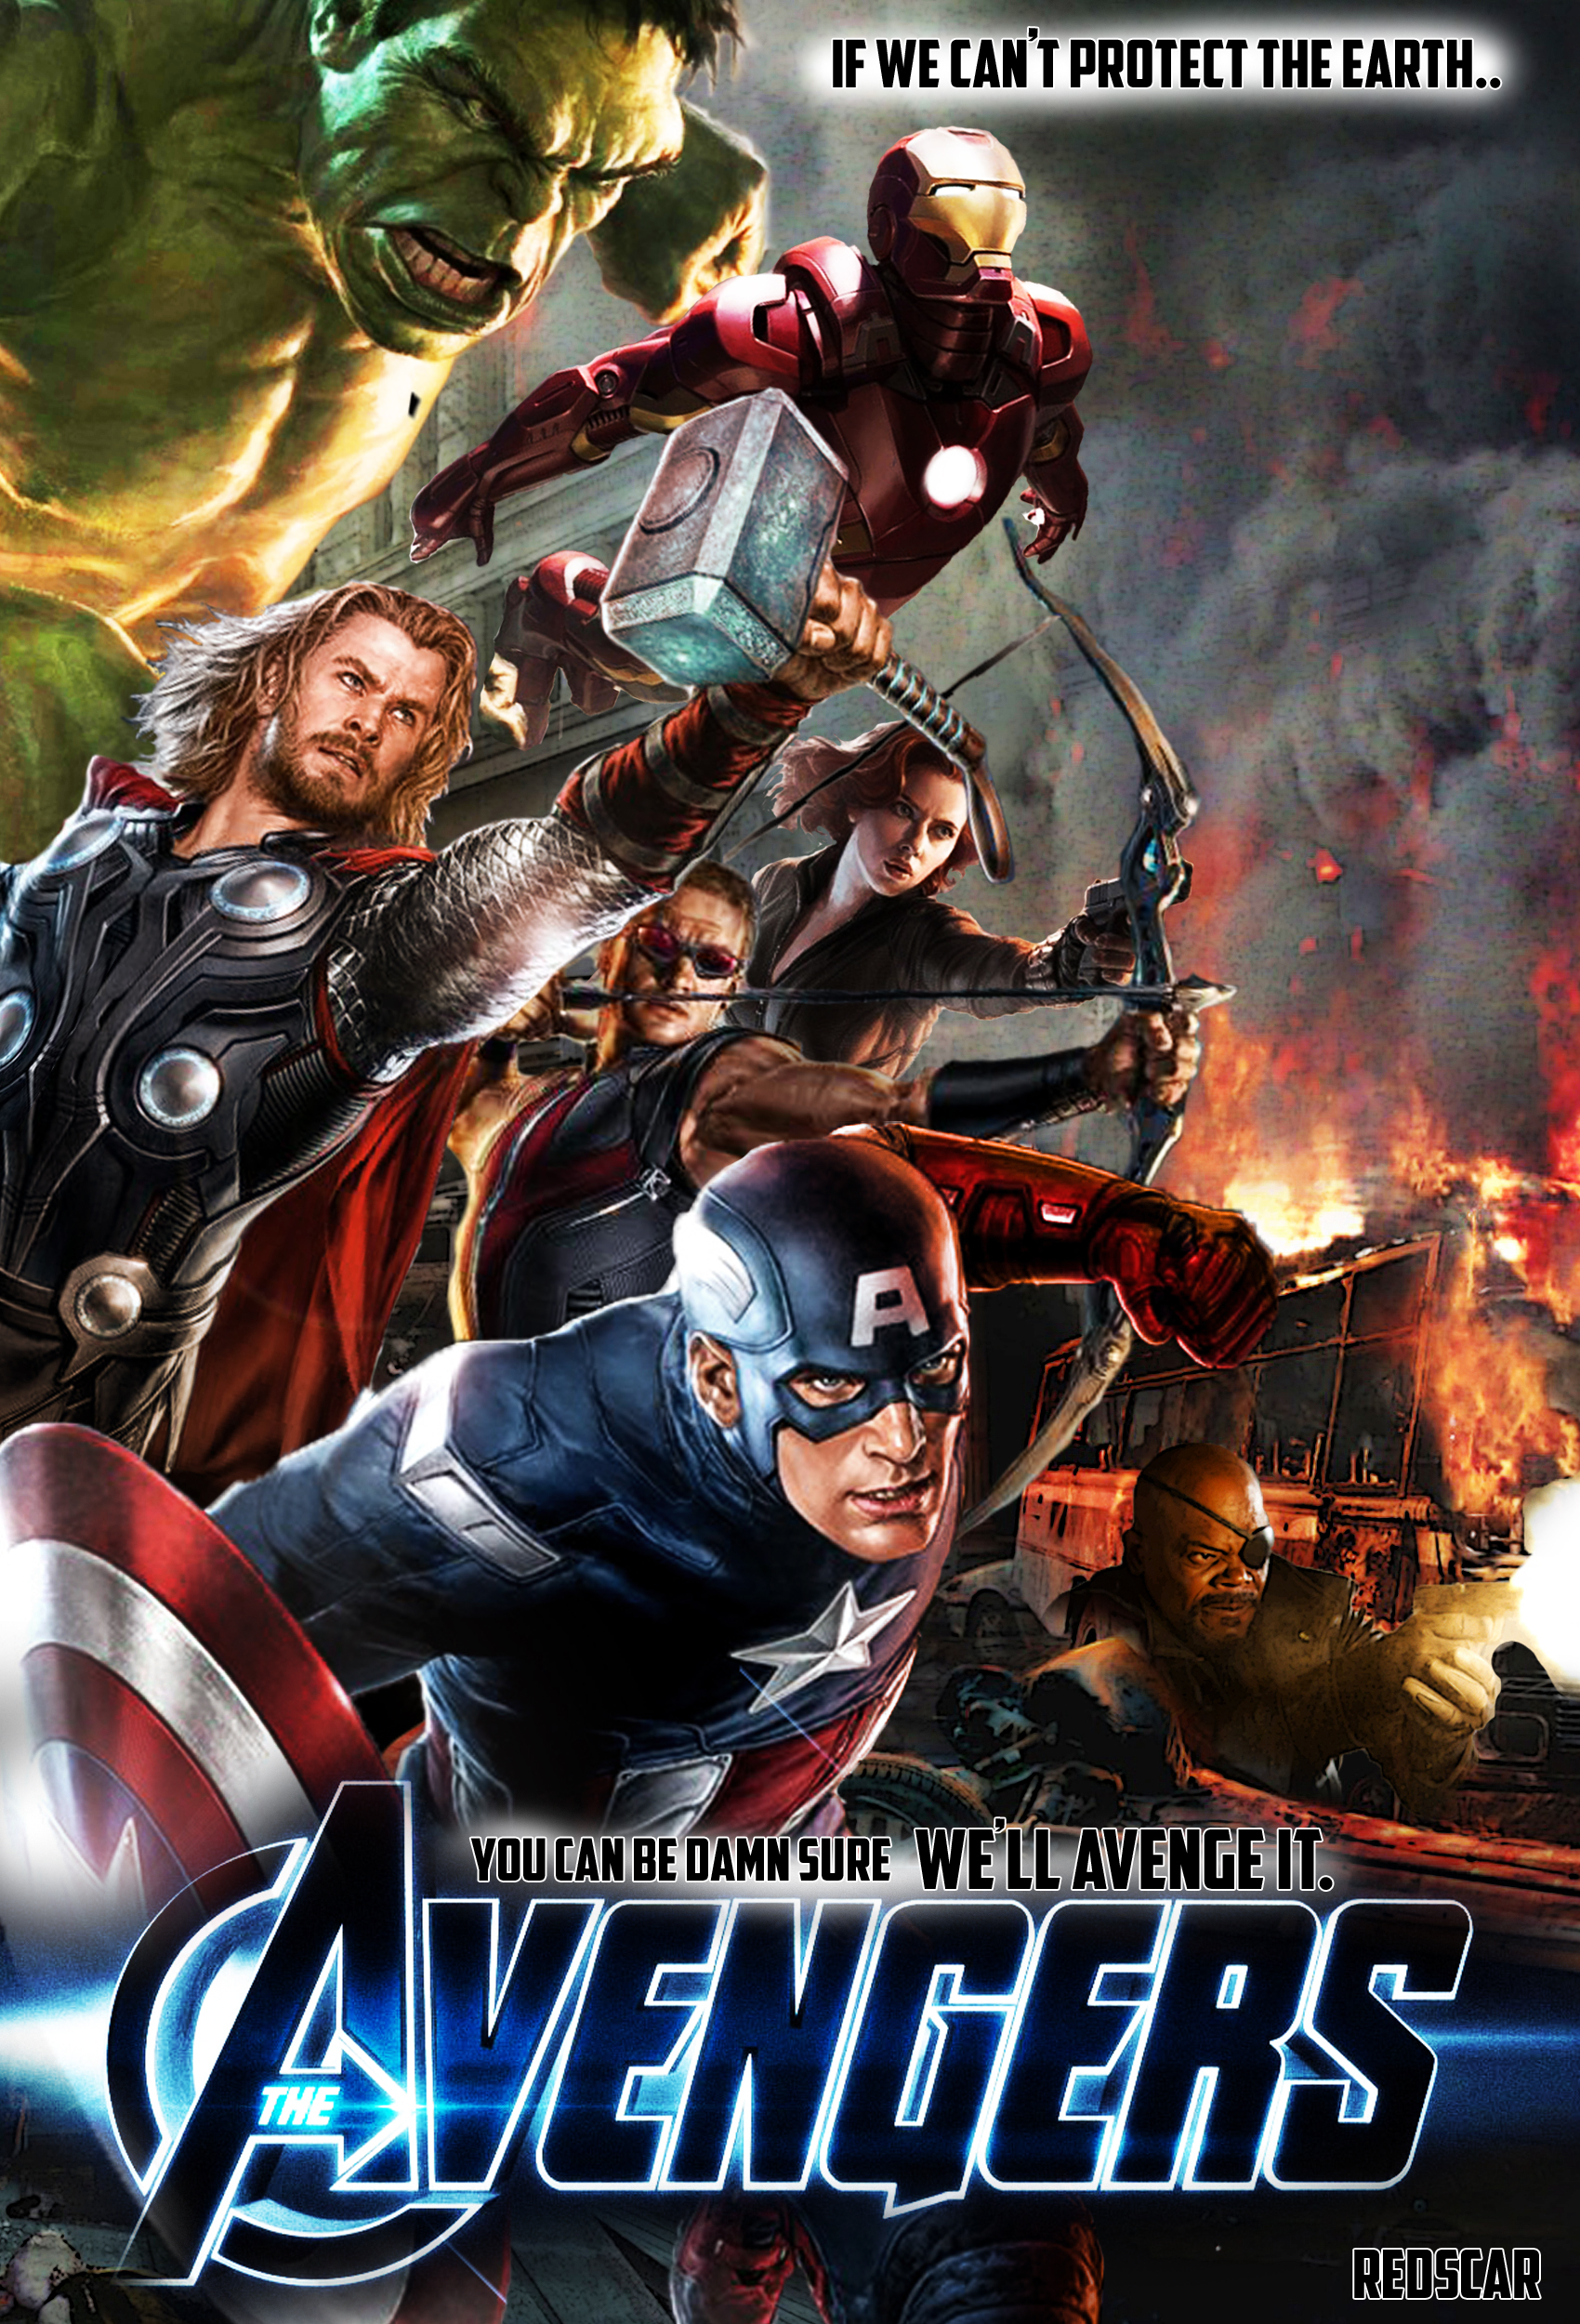 The Avengers - unofficial by RedScar07